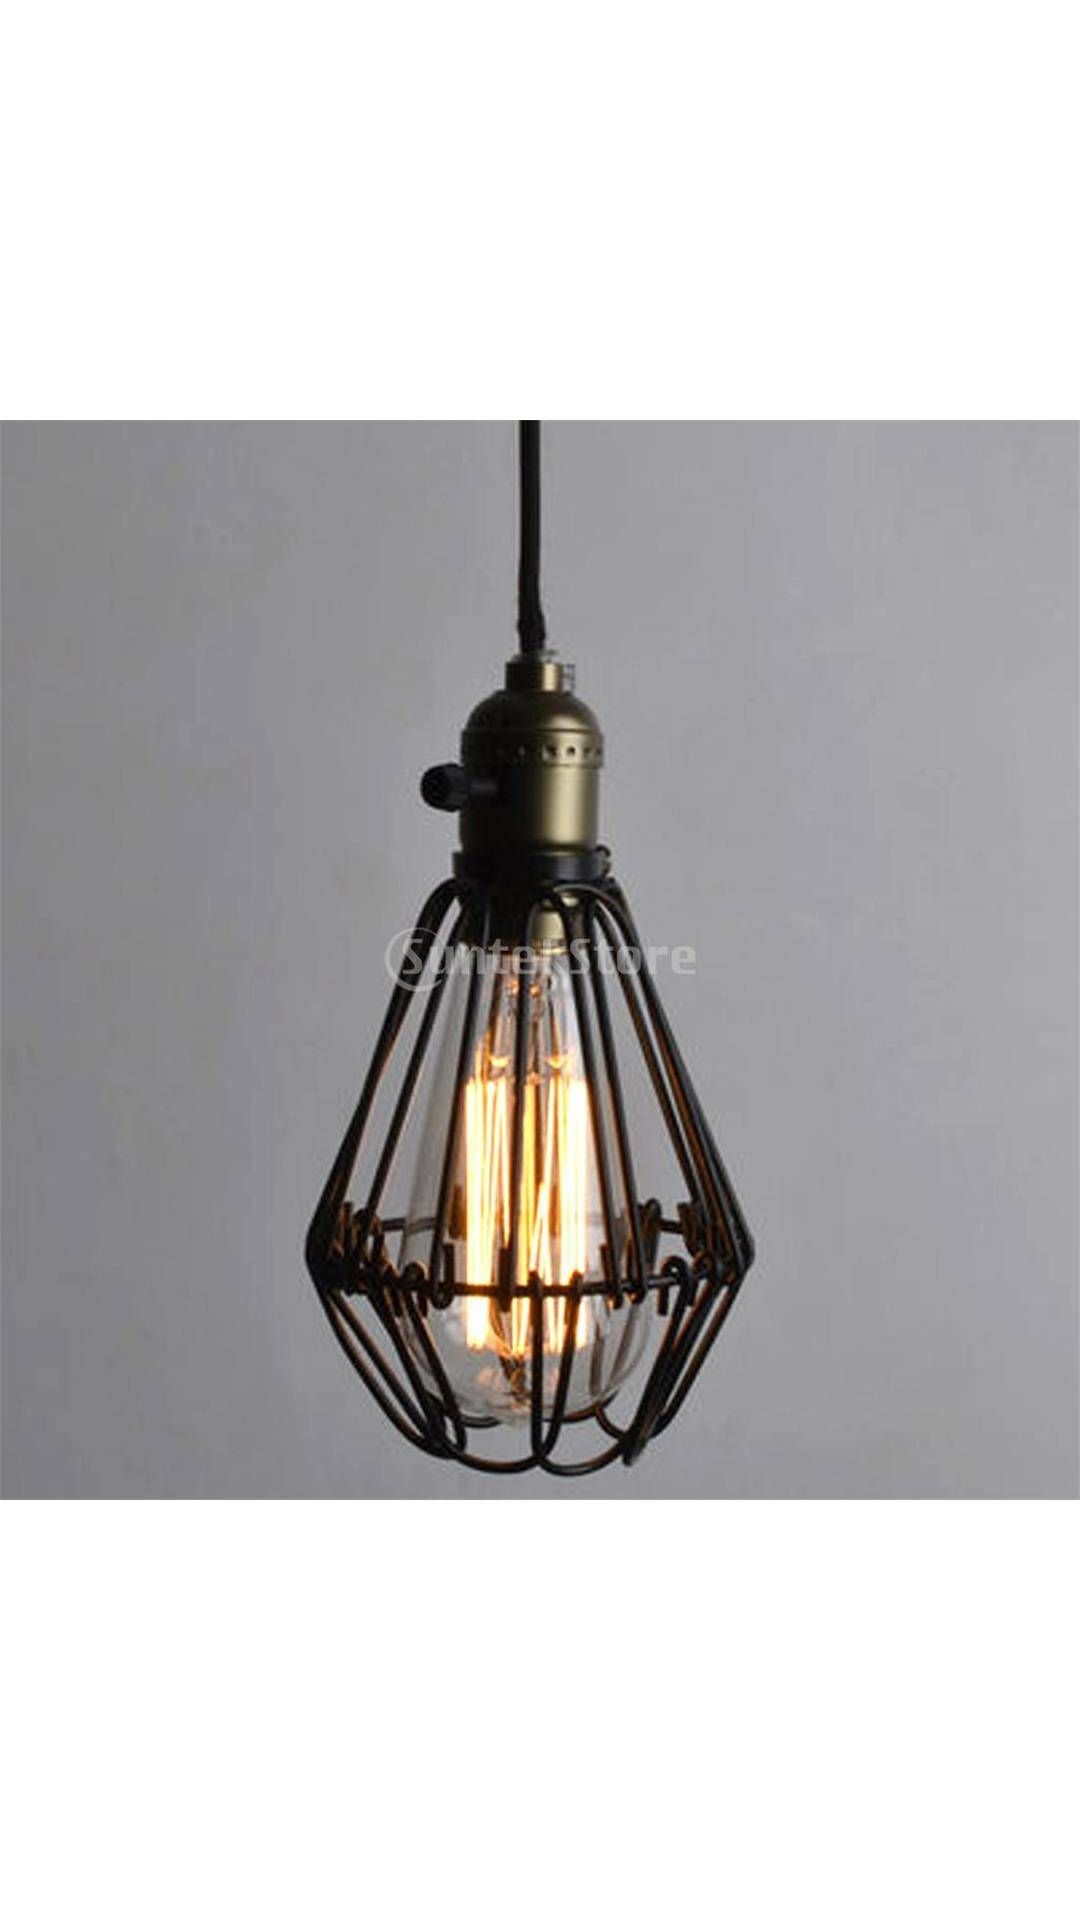 Paytm com buy magideal retro iron hanging lamp cages shade no wire pendant light e27 antique brass online at best prices in india on paytm com